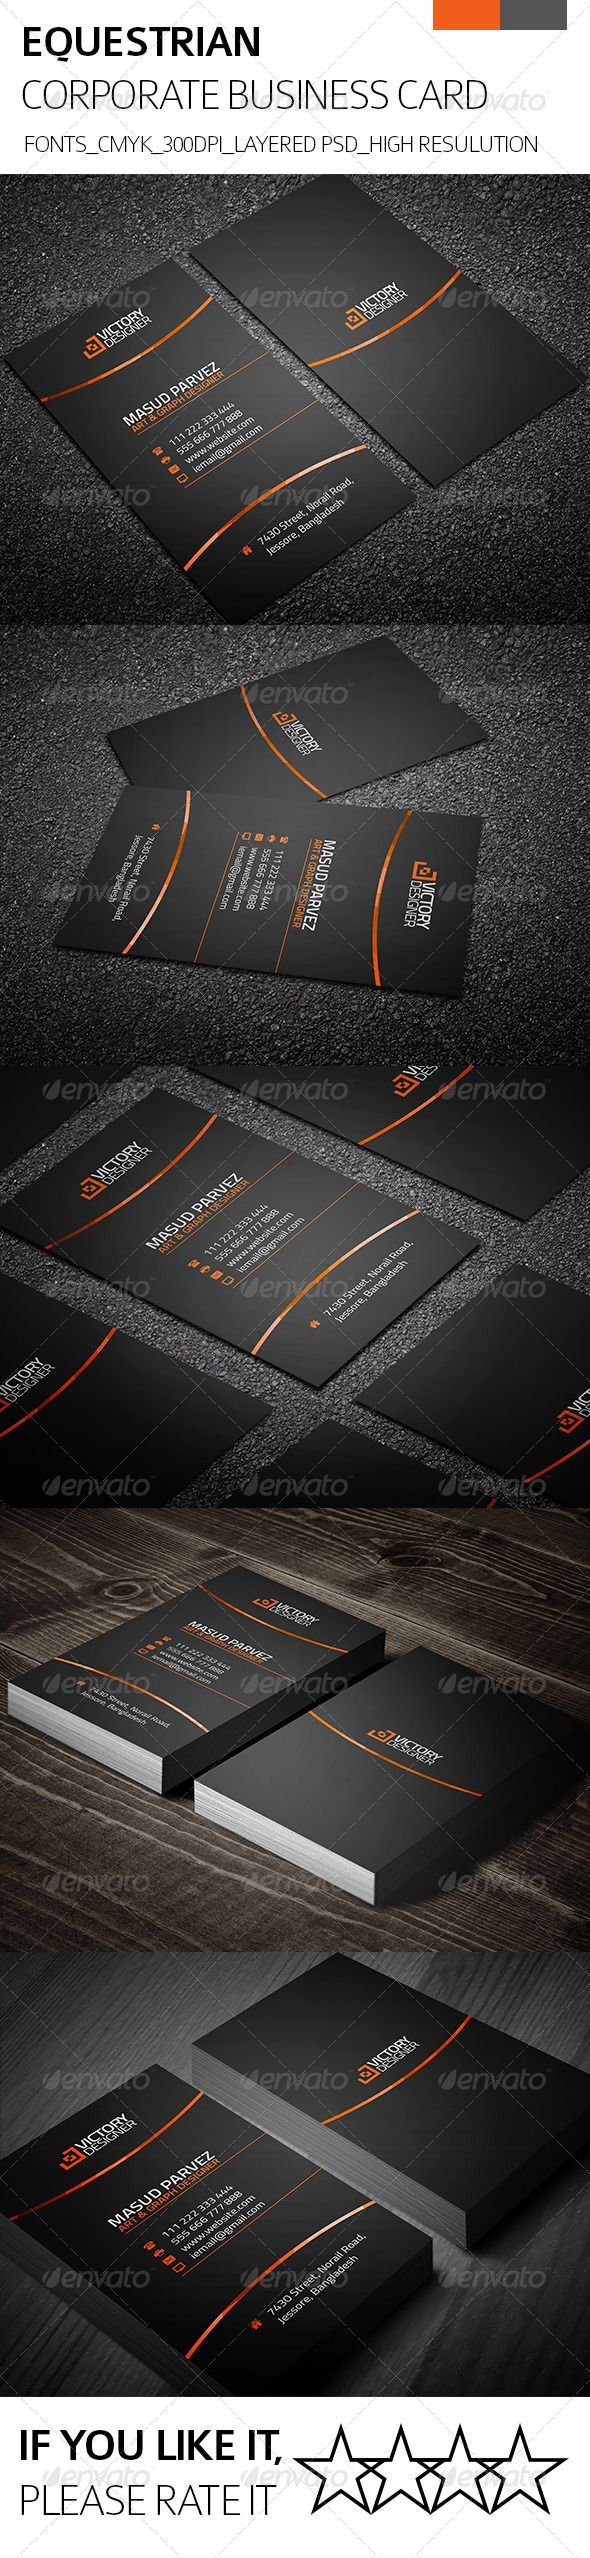 Equestrian & Corporate Business Card   Corporate business, Business ...